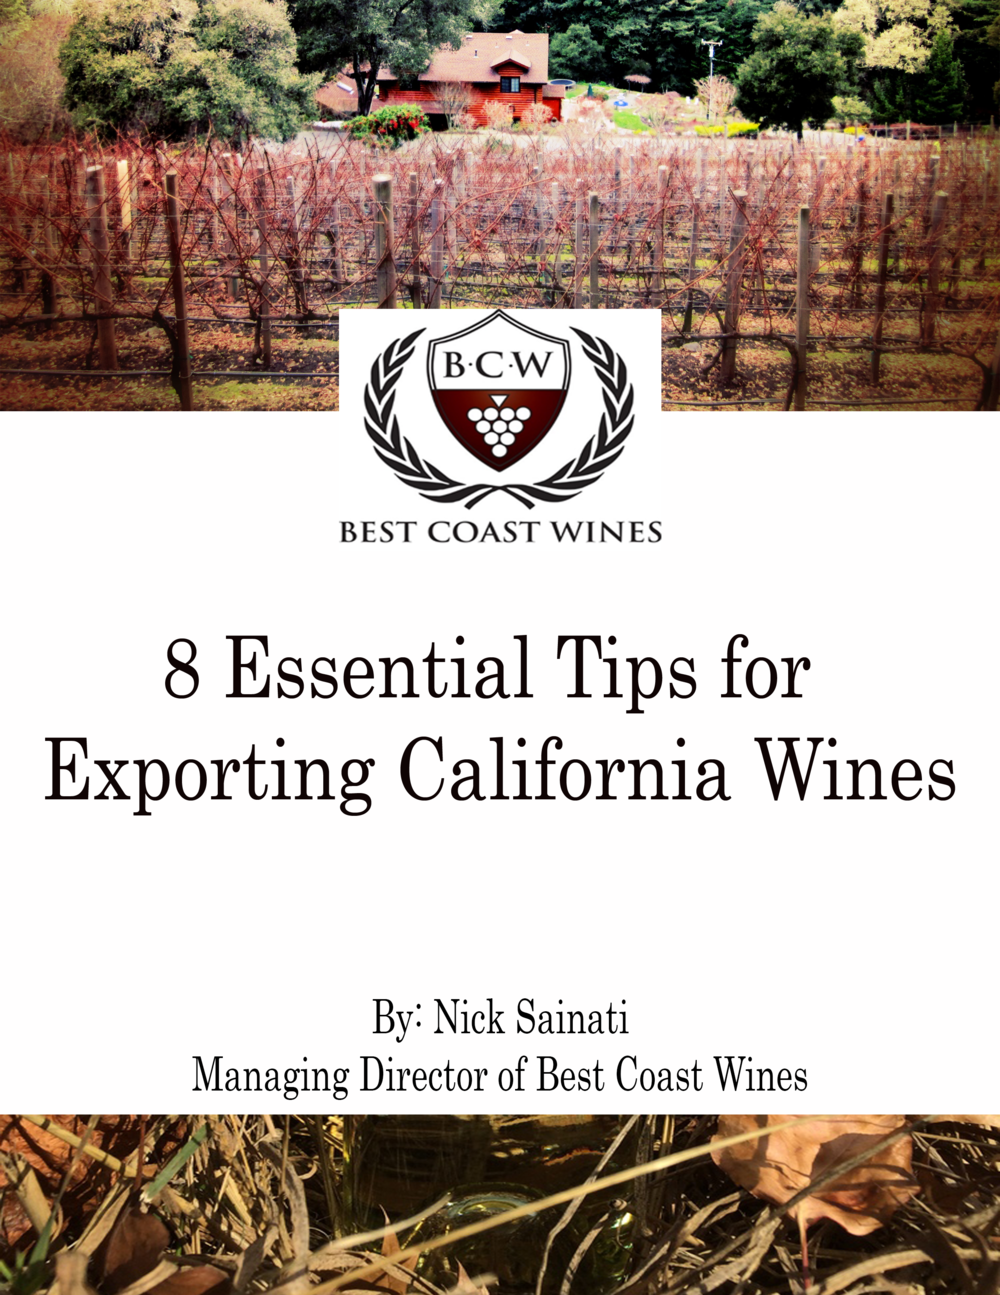 Best Coast Wines' free guide on how to export California and Wanshington wines. Download your copy!